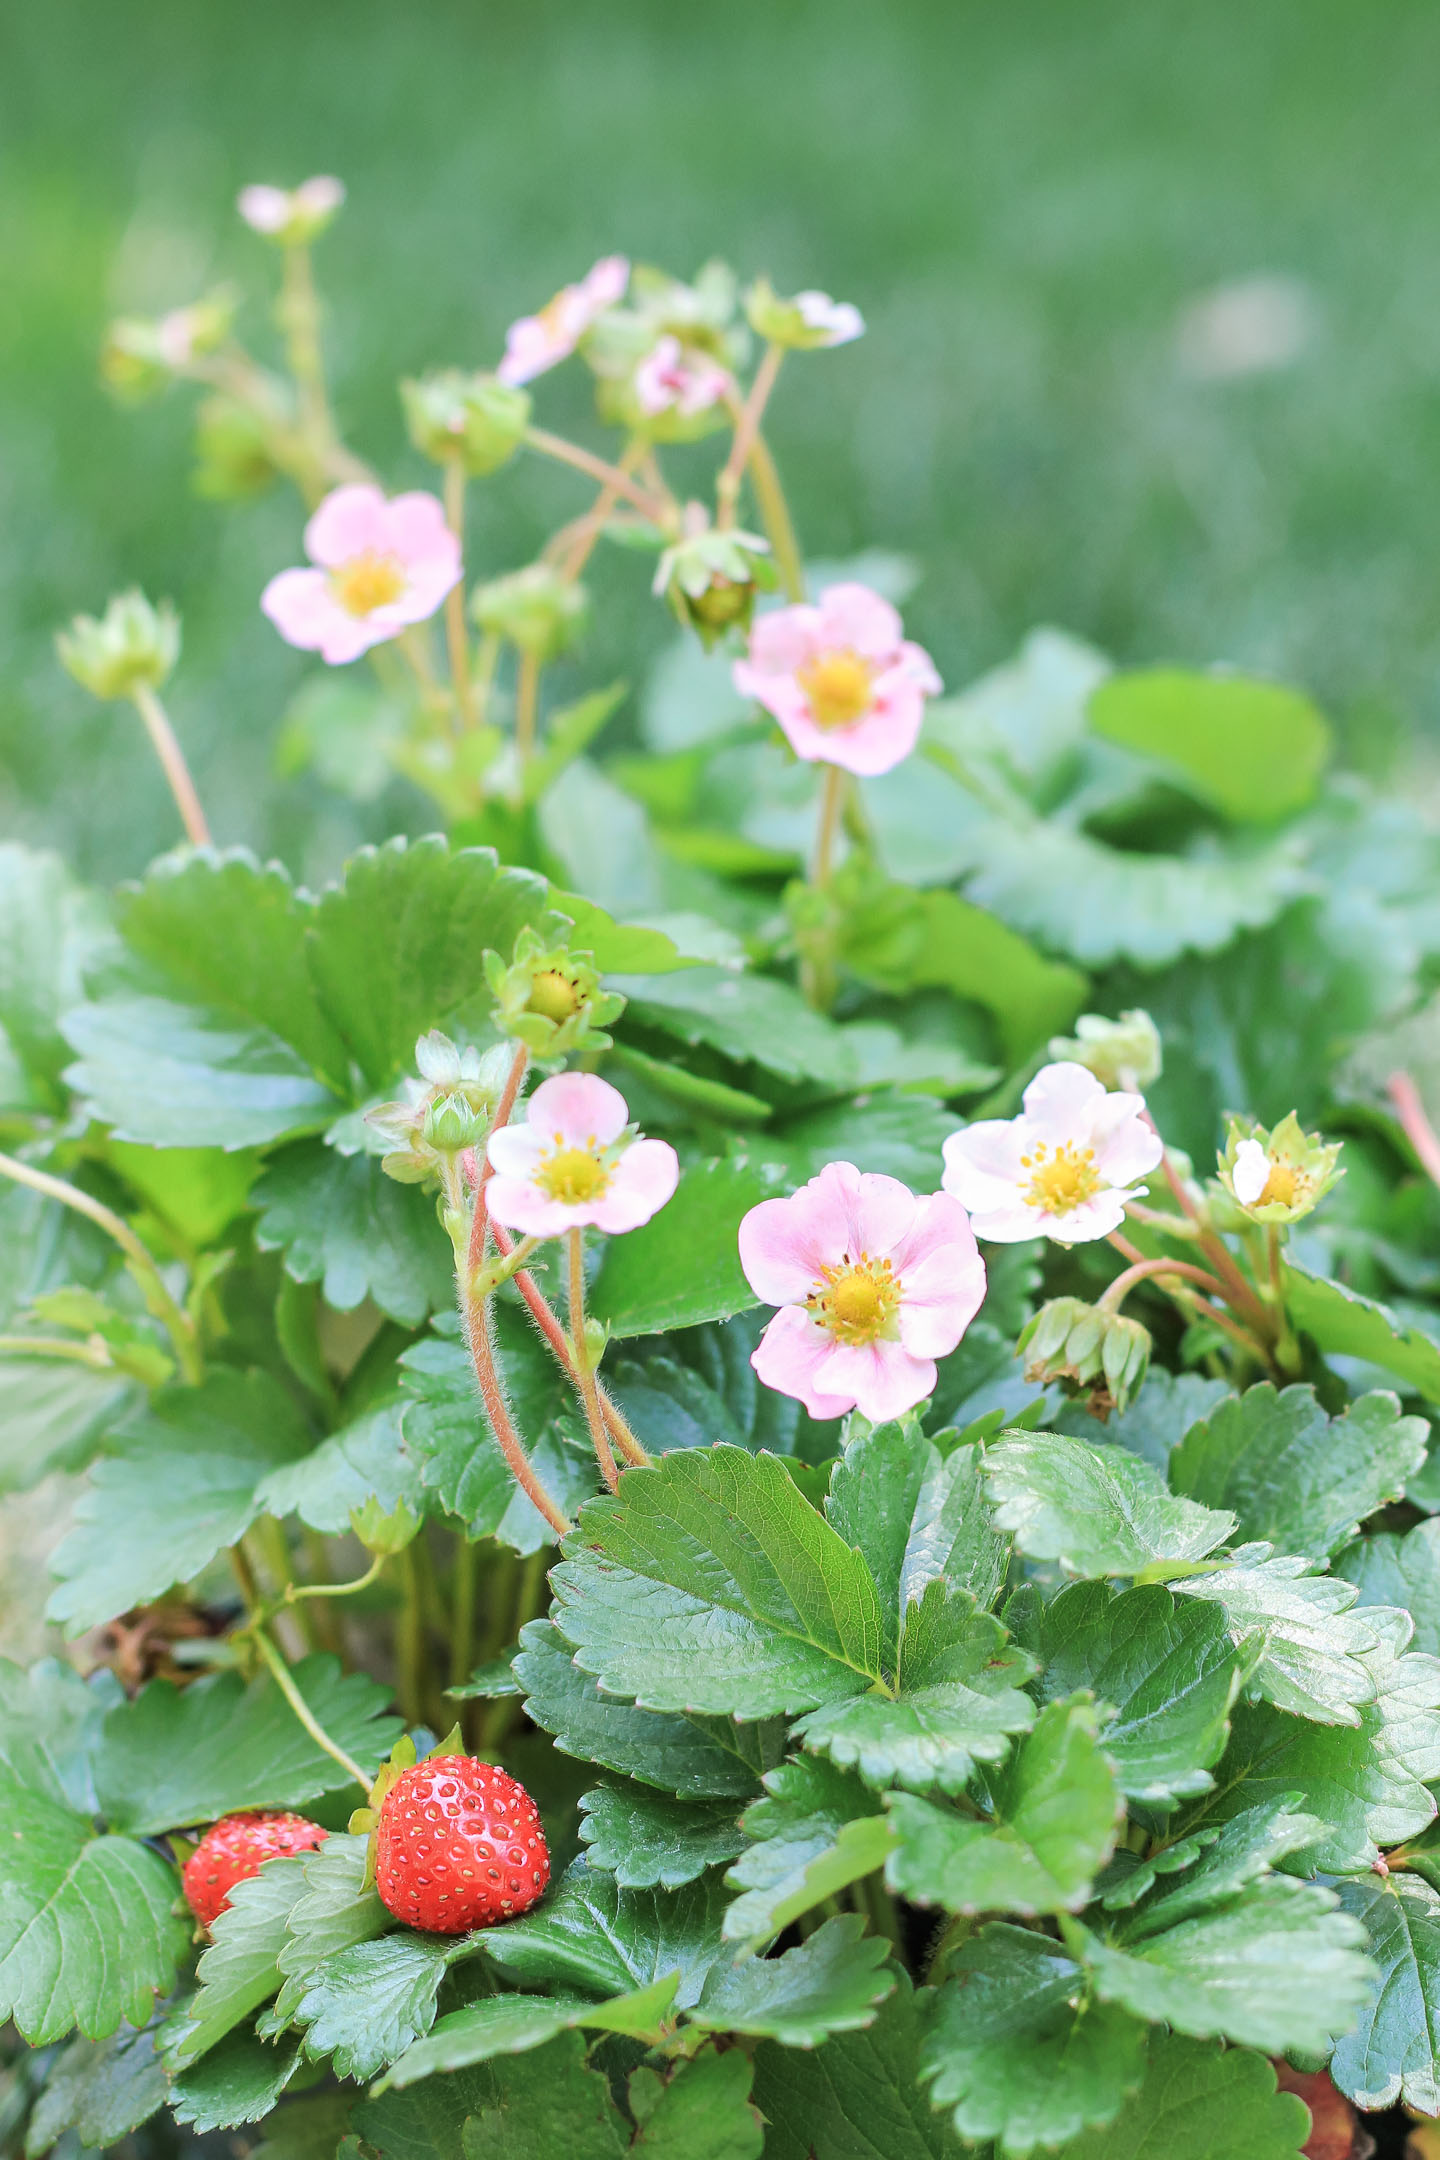 Flowering strawberry plant.